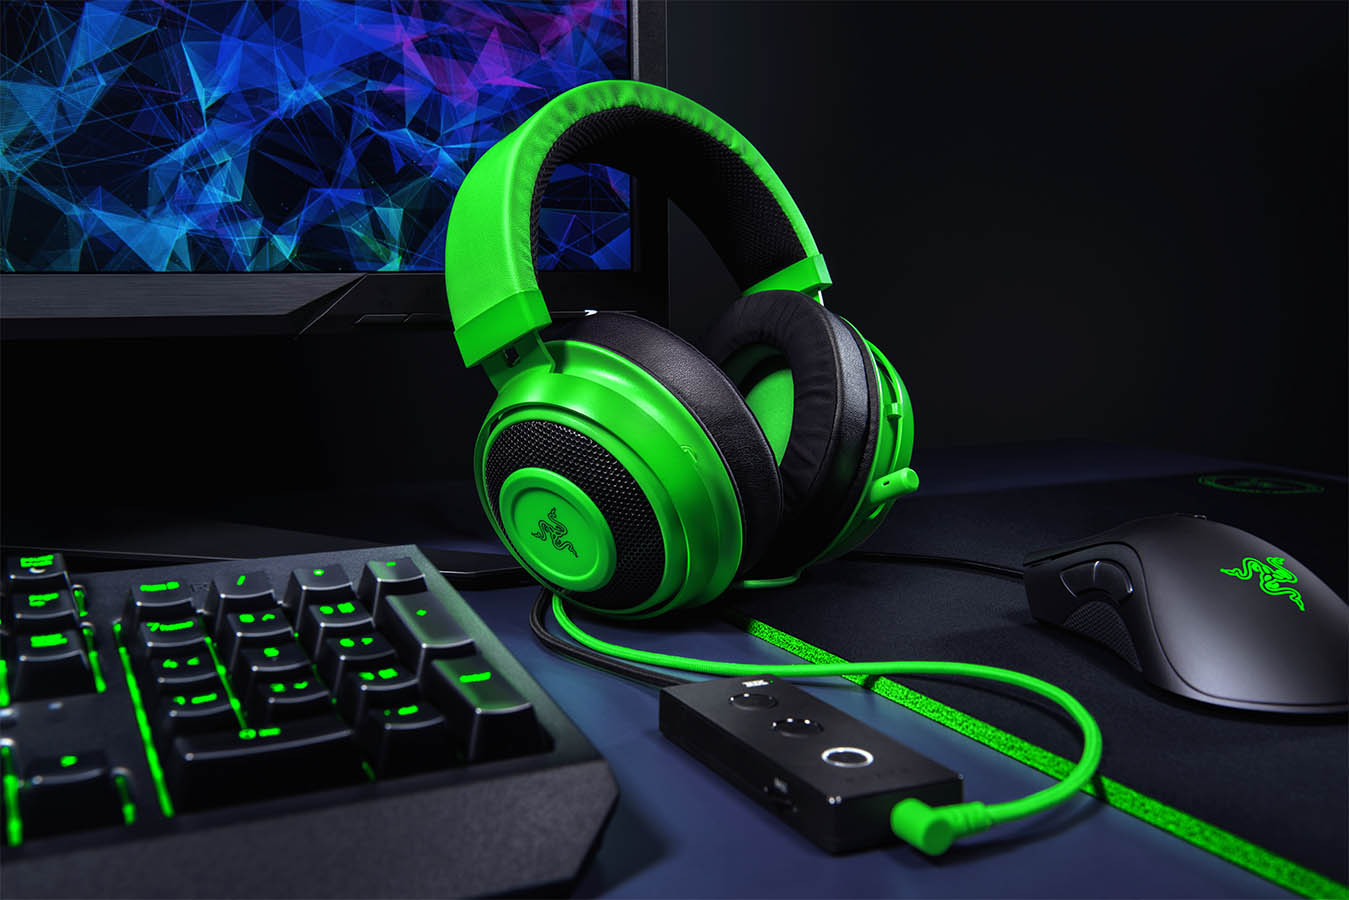 Razer pesenta los nuevos Kraken Tournament Edition, BlackWidow Elite y Mamba Wireless